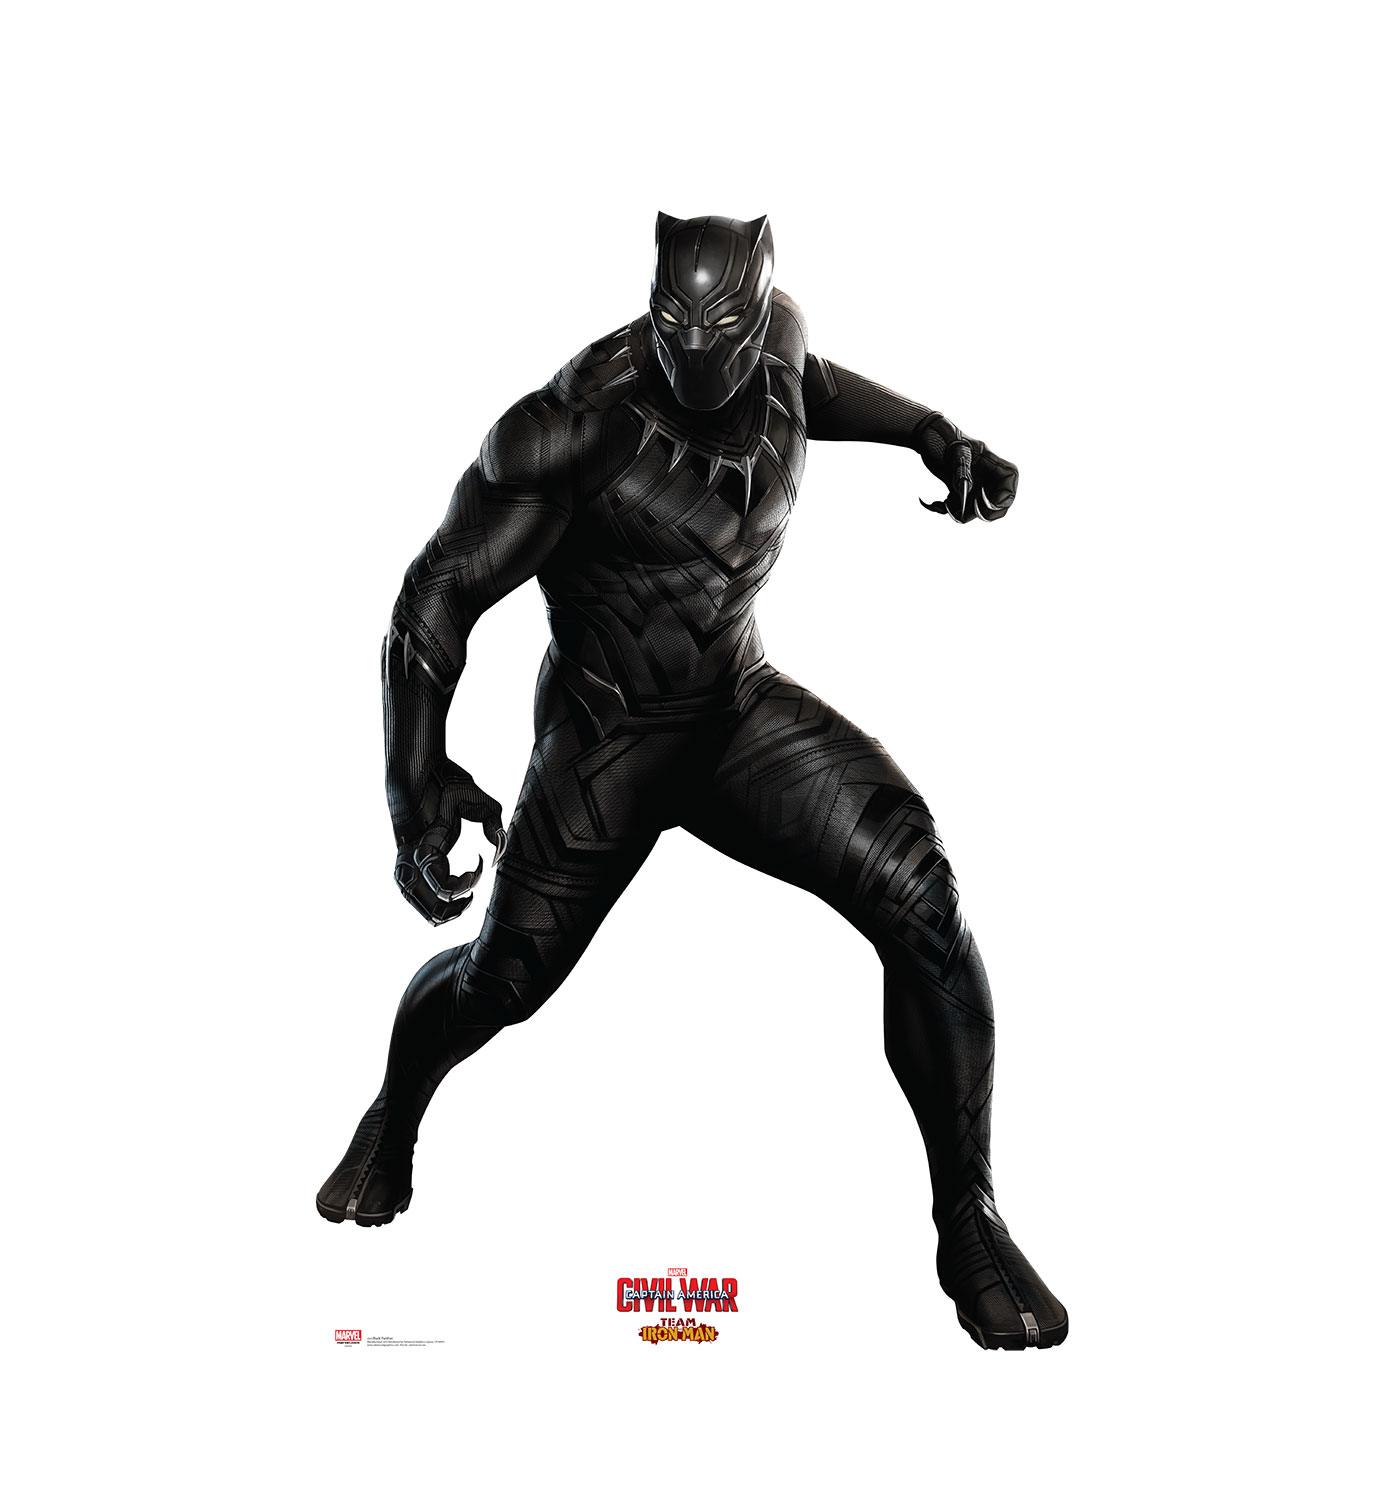 captain-america-civil-war-artwork-black-panther-2